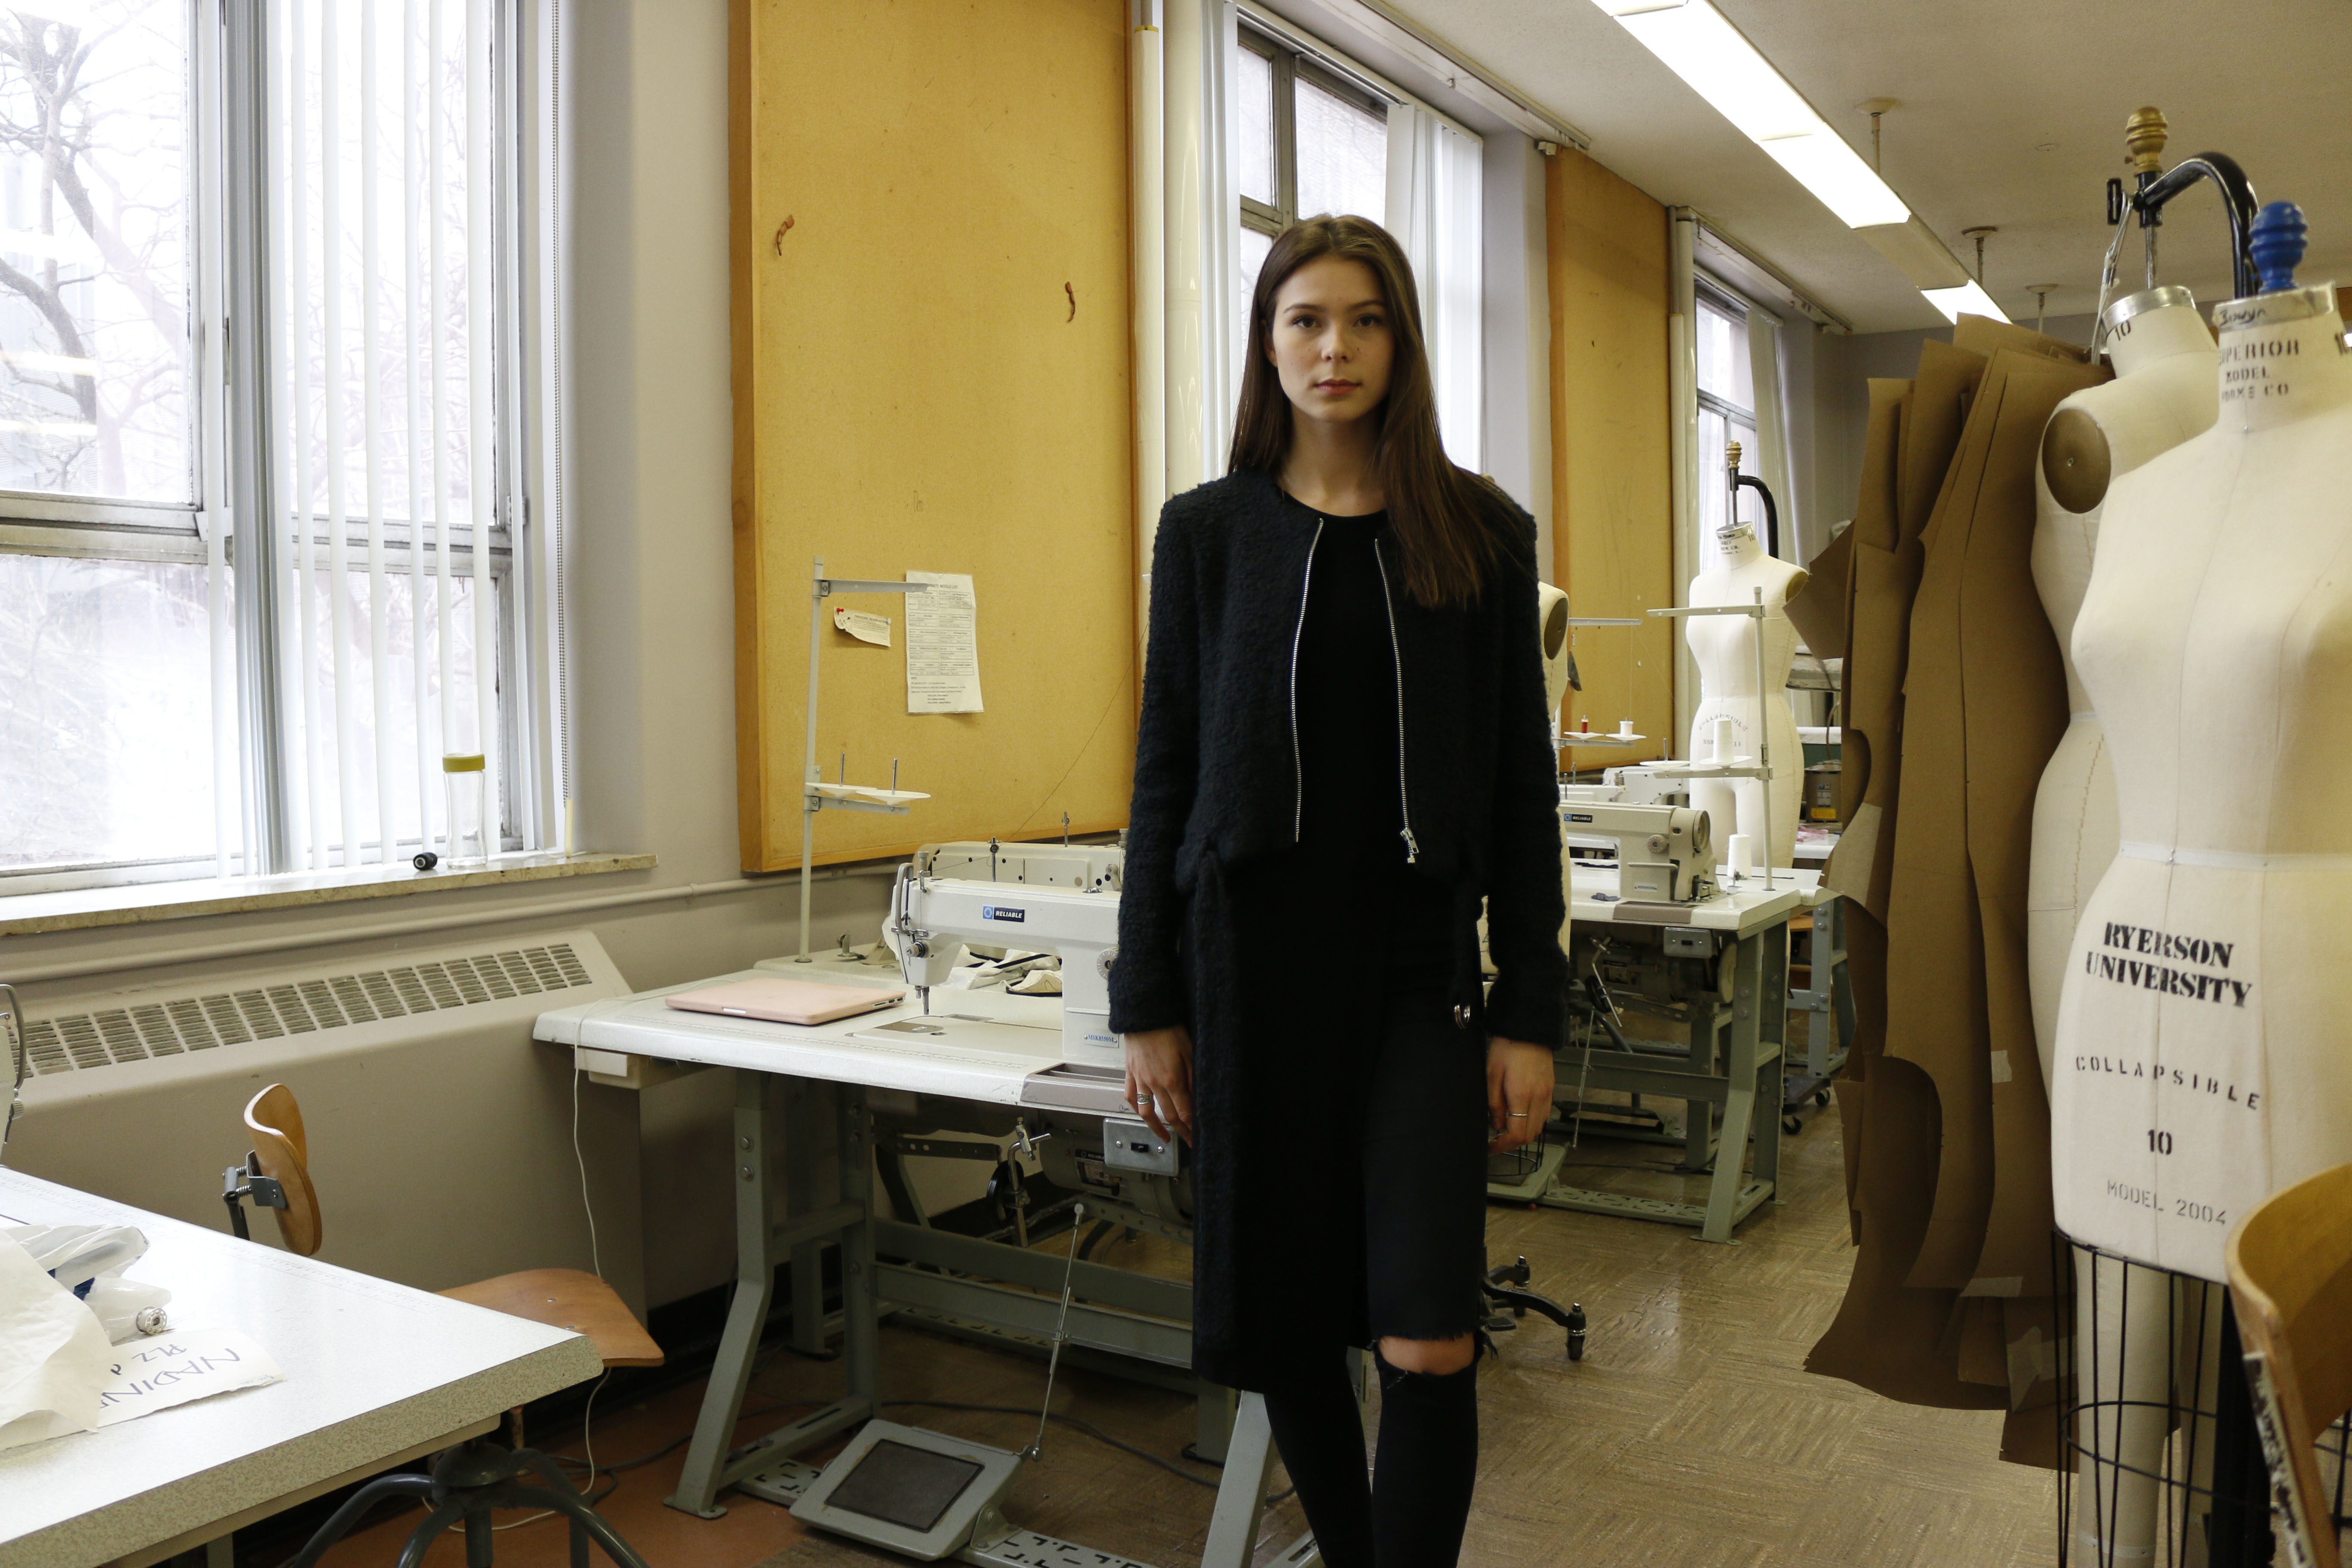 UPDATED Fashion Student Millie Yates Creates Designs Aimed At The Taller Woman